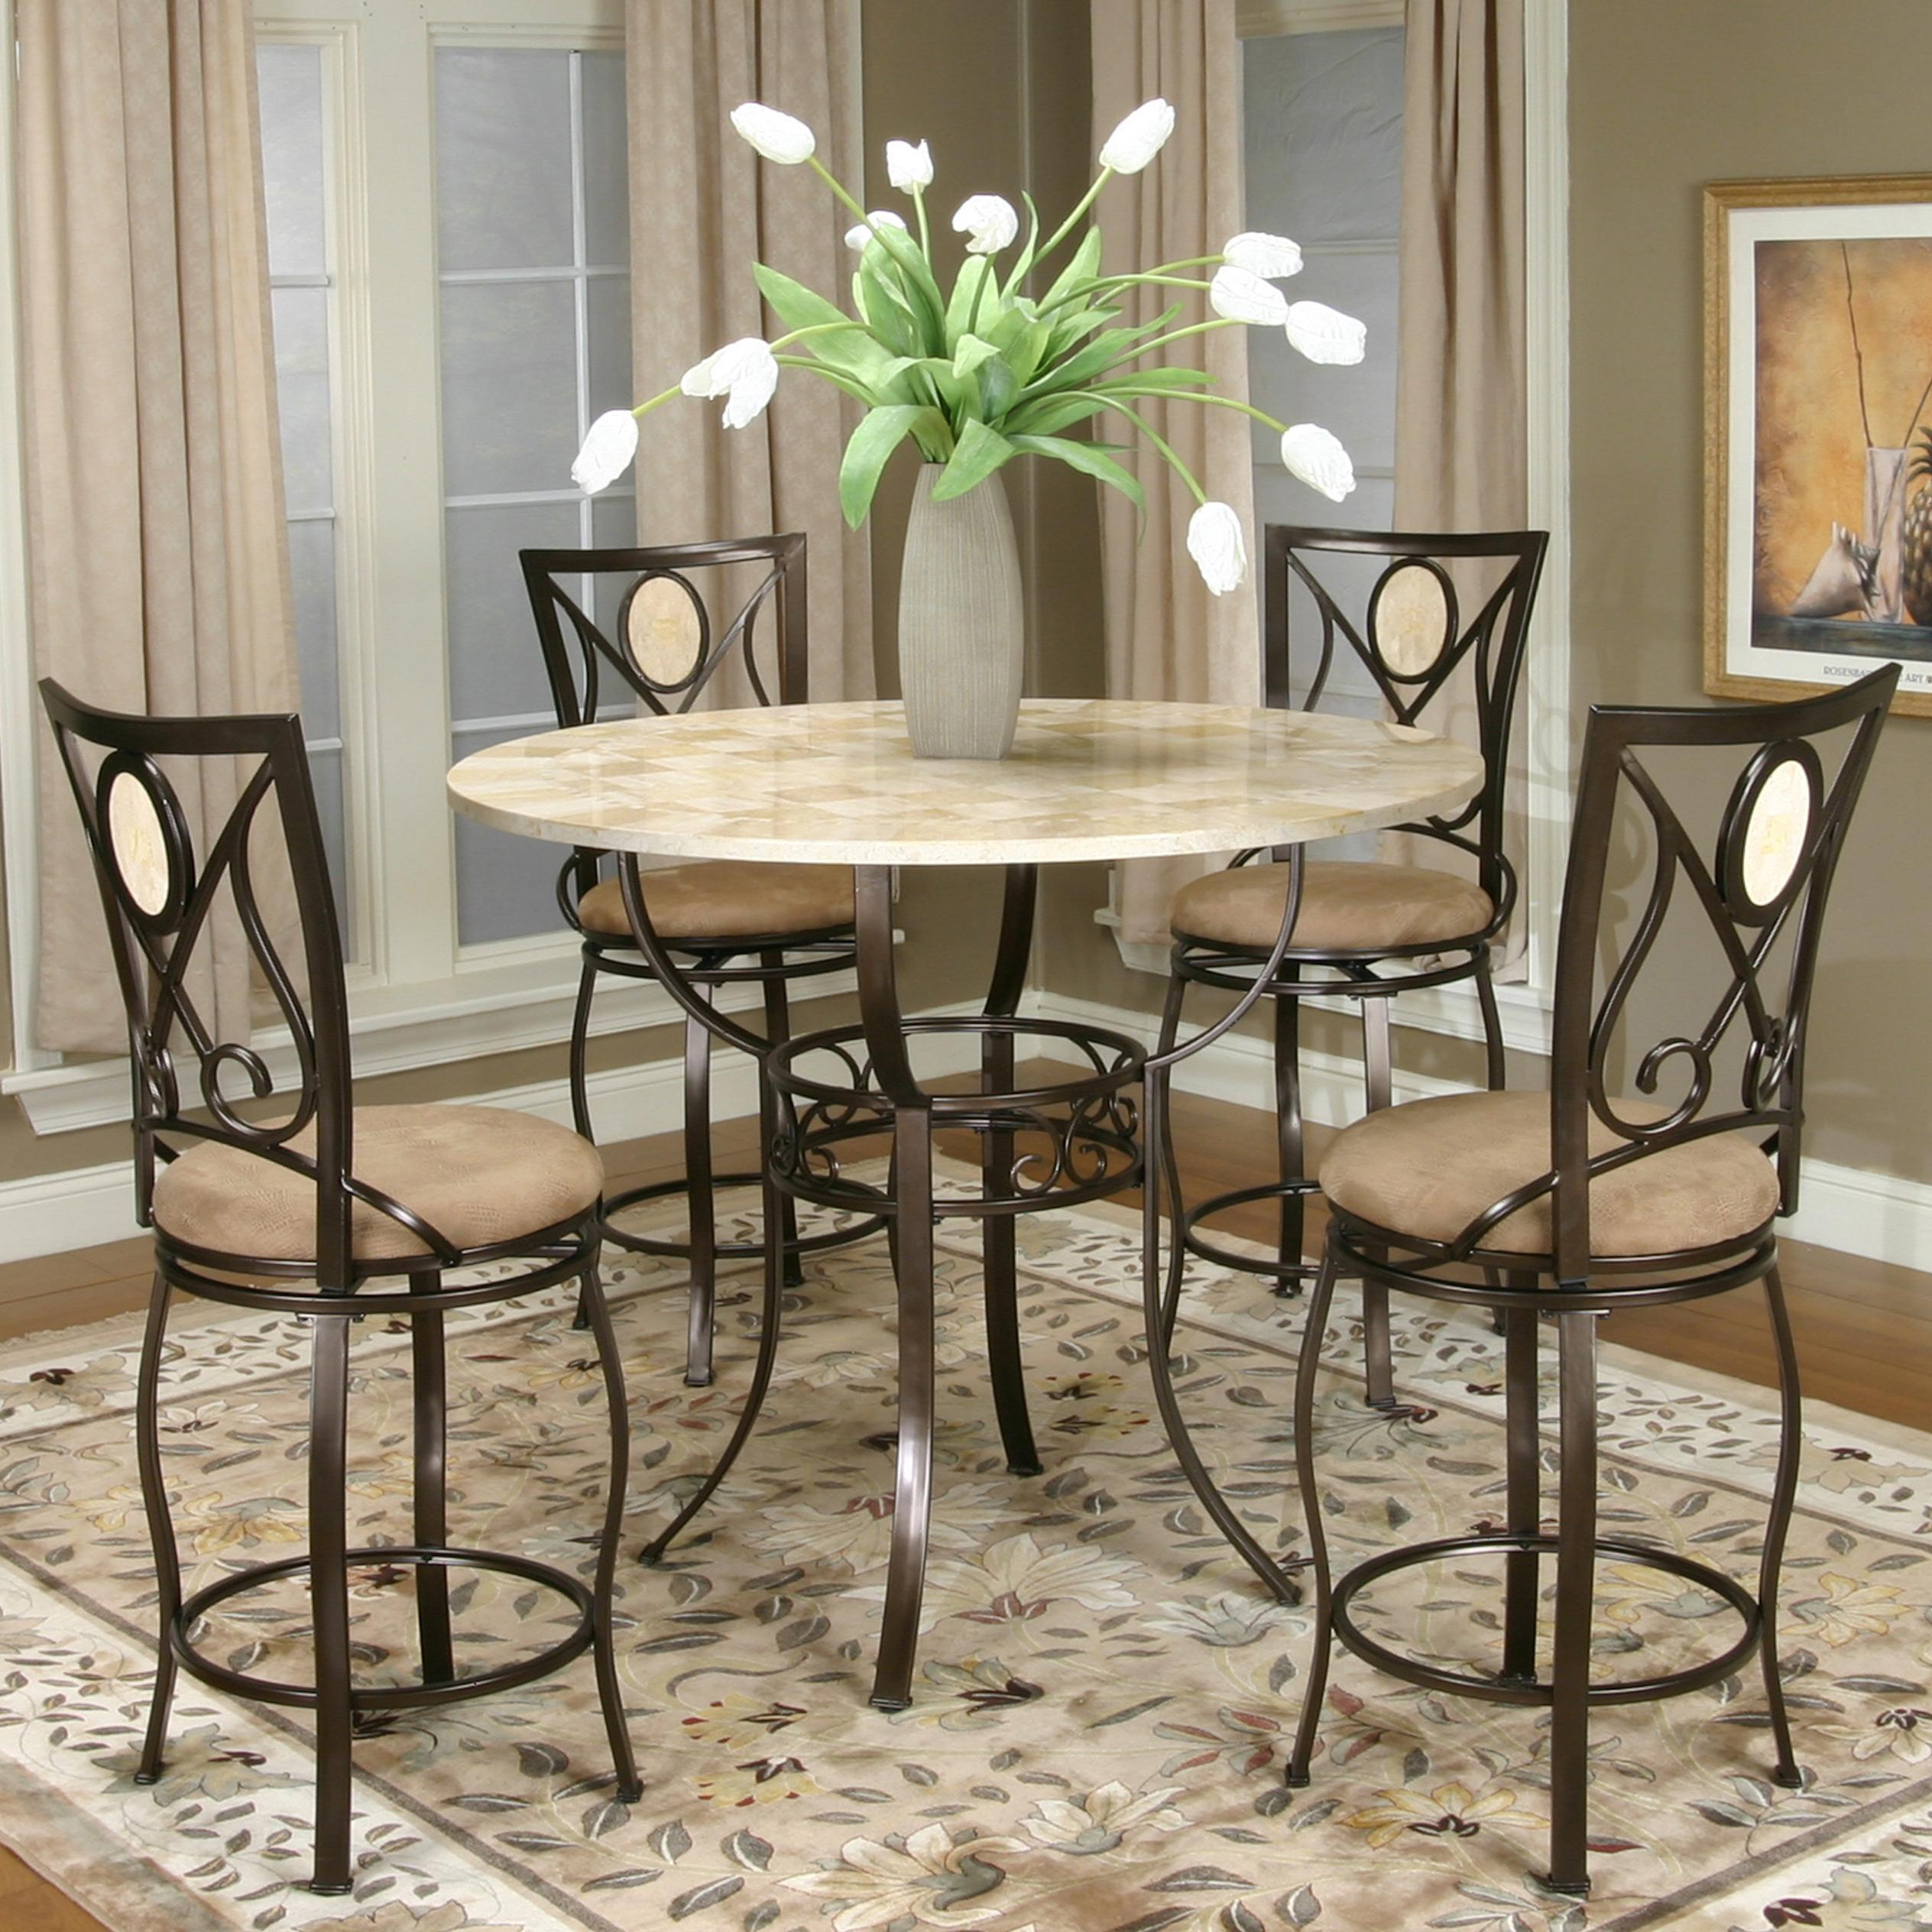 Dining room table and chairs sets